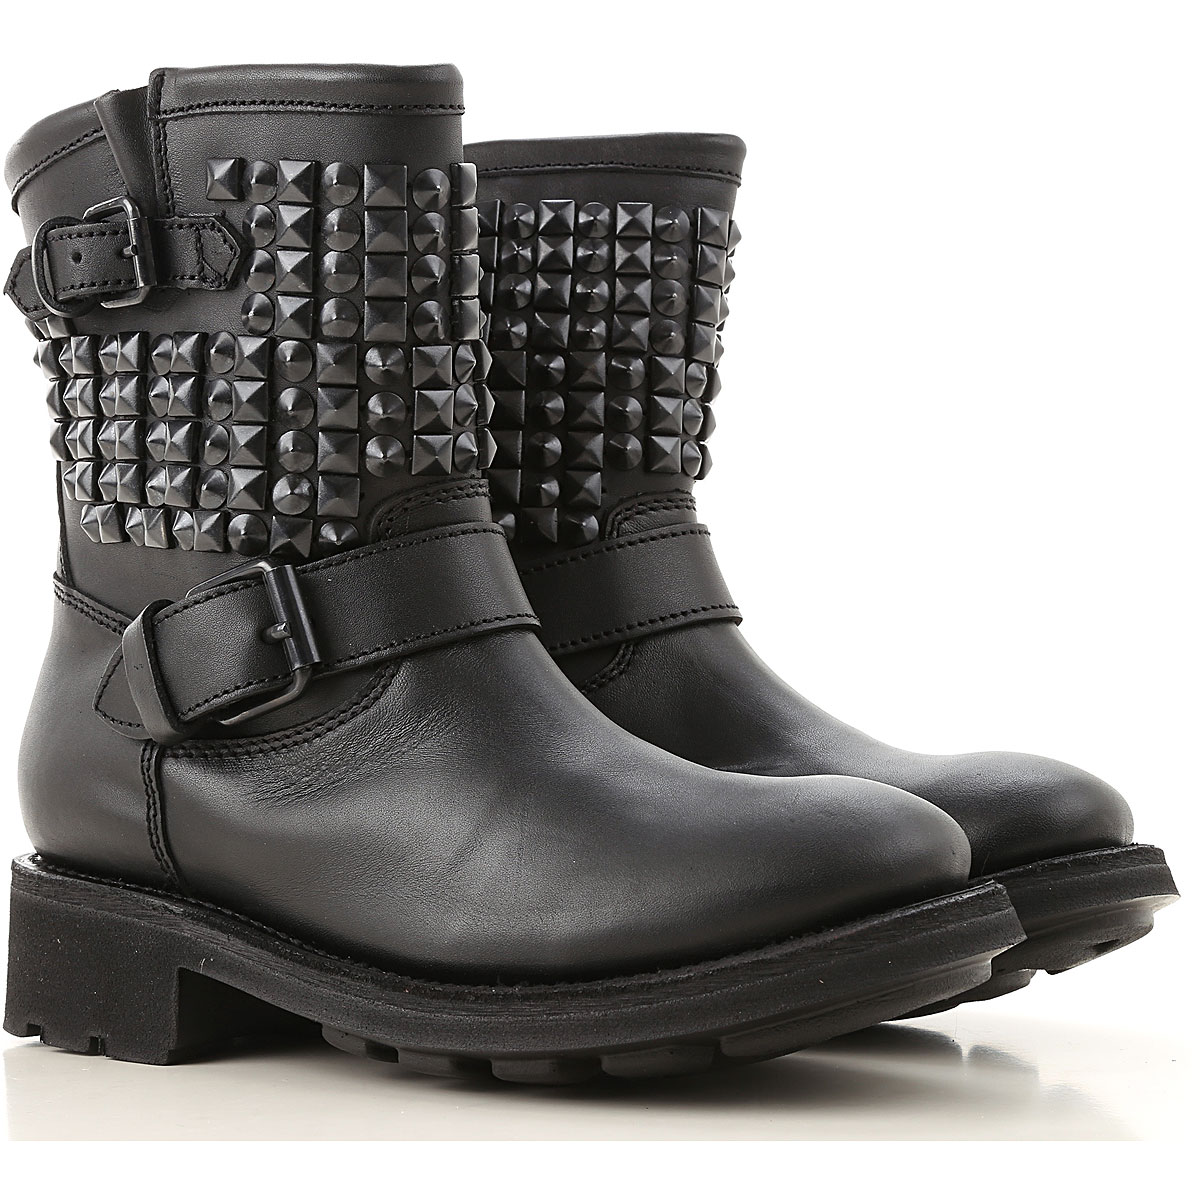 Ash Boots for Women, Booties On Sale, Black, Leather, 2019, 5.5 6 6.5 7 8 8.5 9 9.5